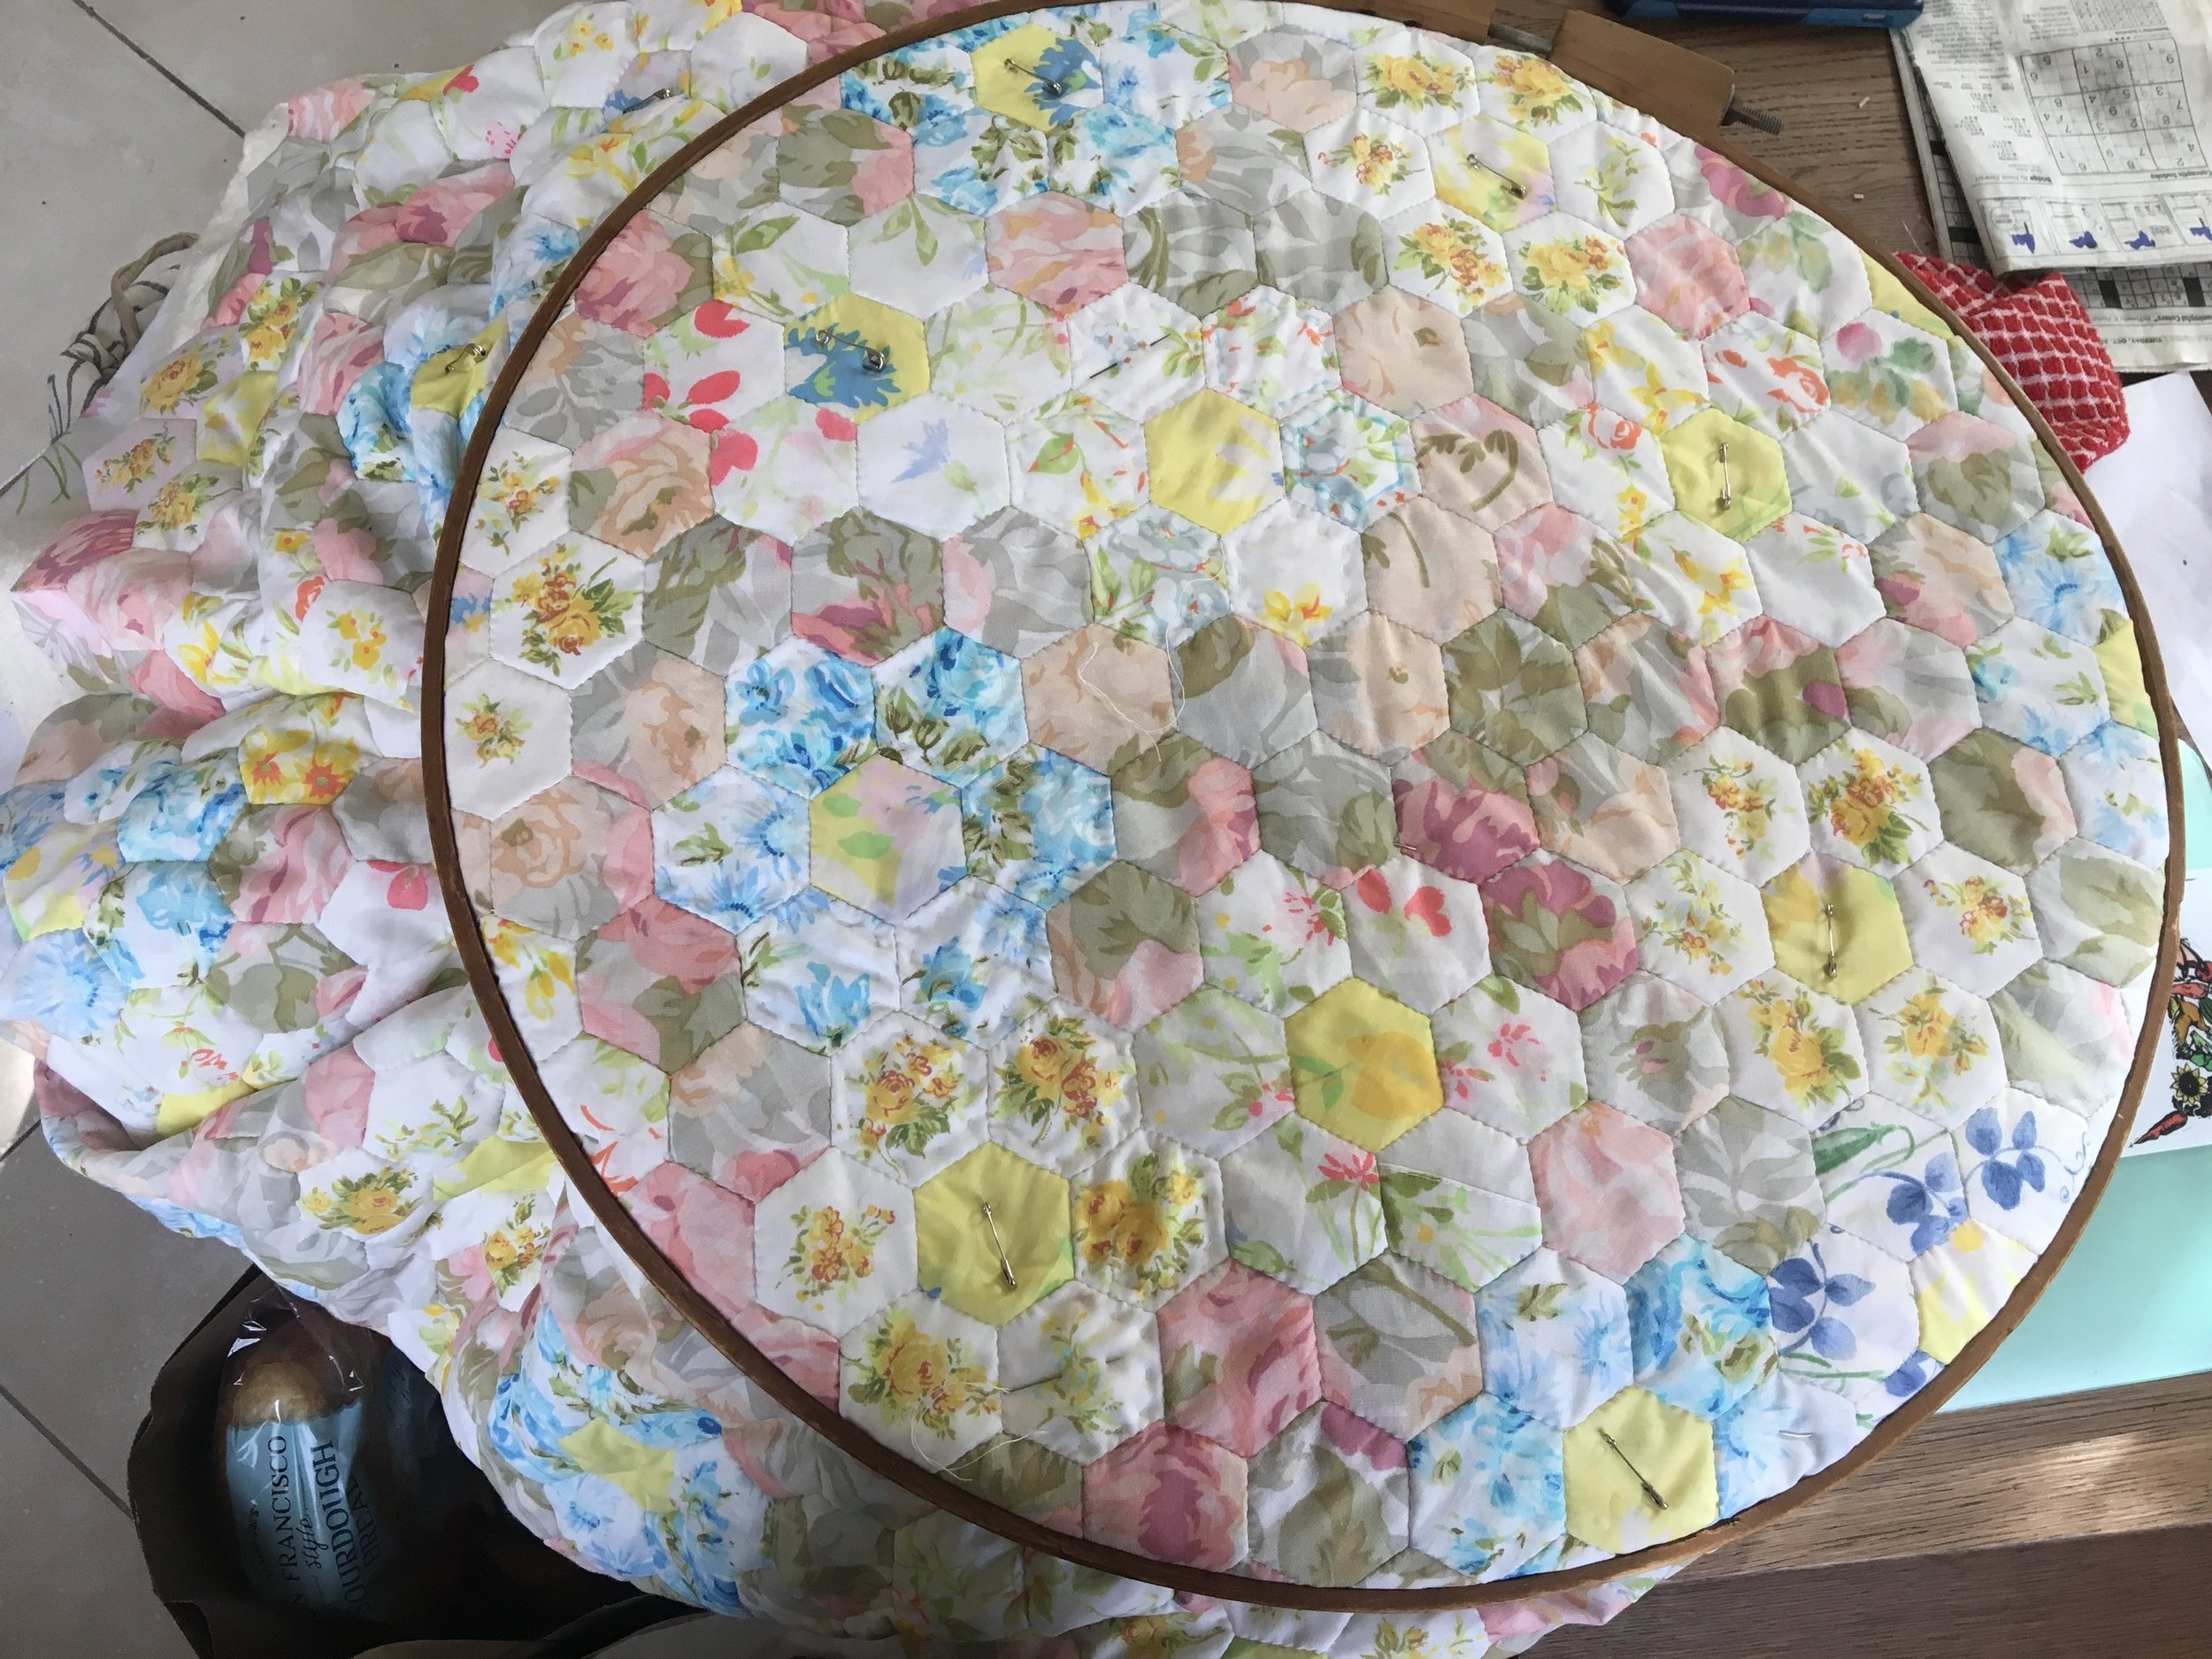 The quilting begins! I've had this quilting hoop for so long and never thought I would actually end up using it